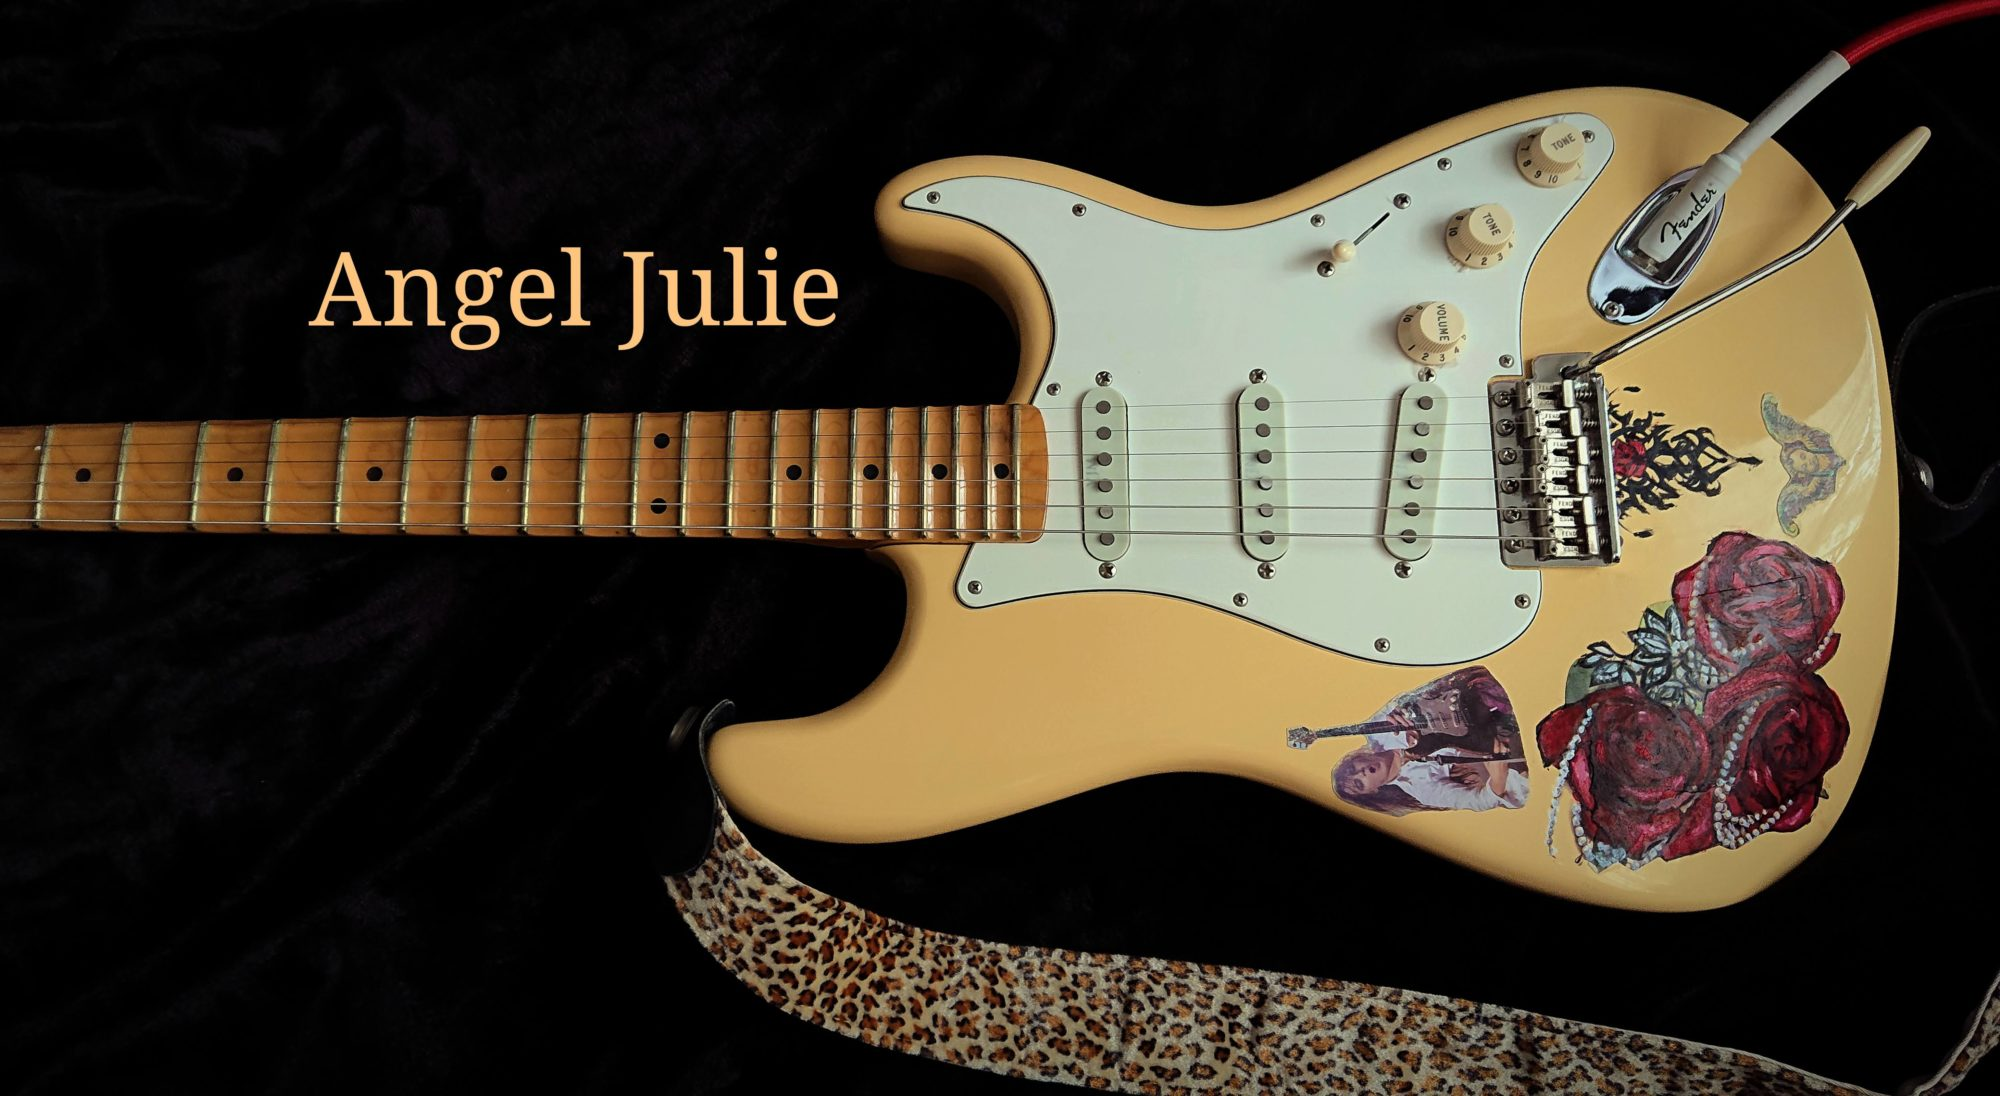 Guitarist Angel Julie Official site